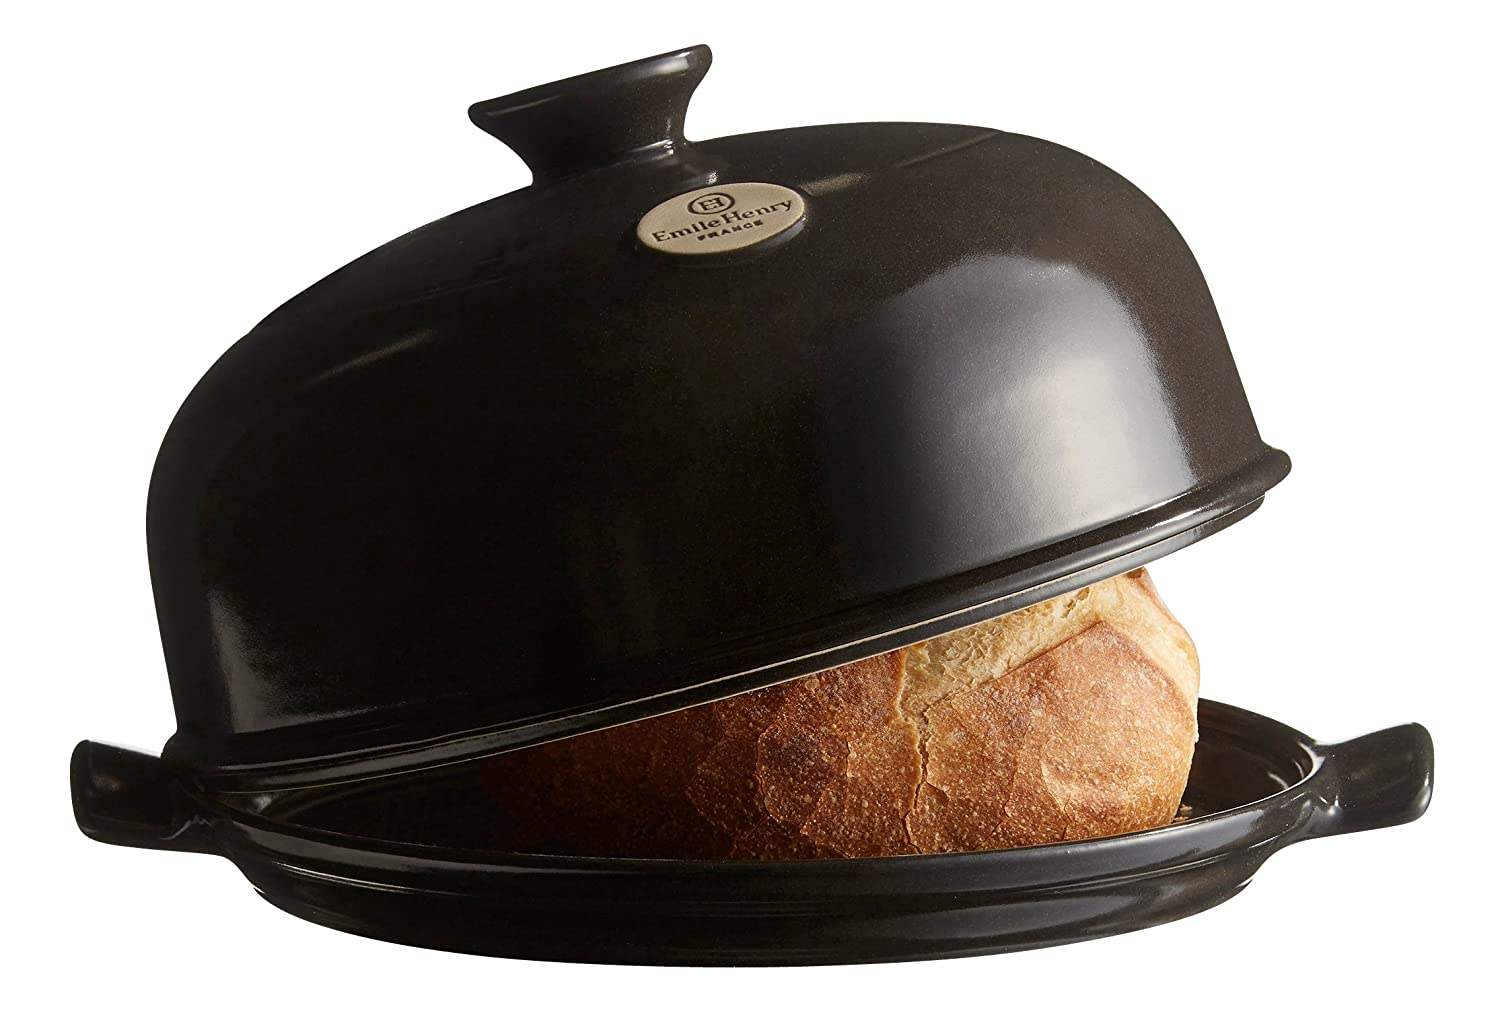 "Emile Henry Made In France Bread Cloche, 13.2 x 11.2"""", Charcoal"